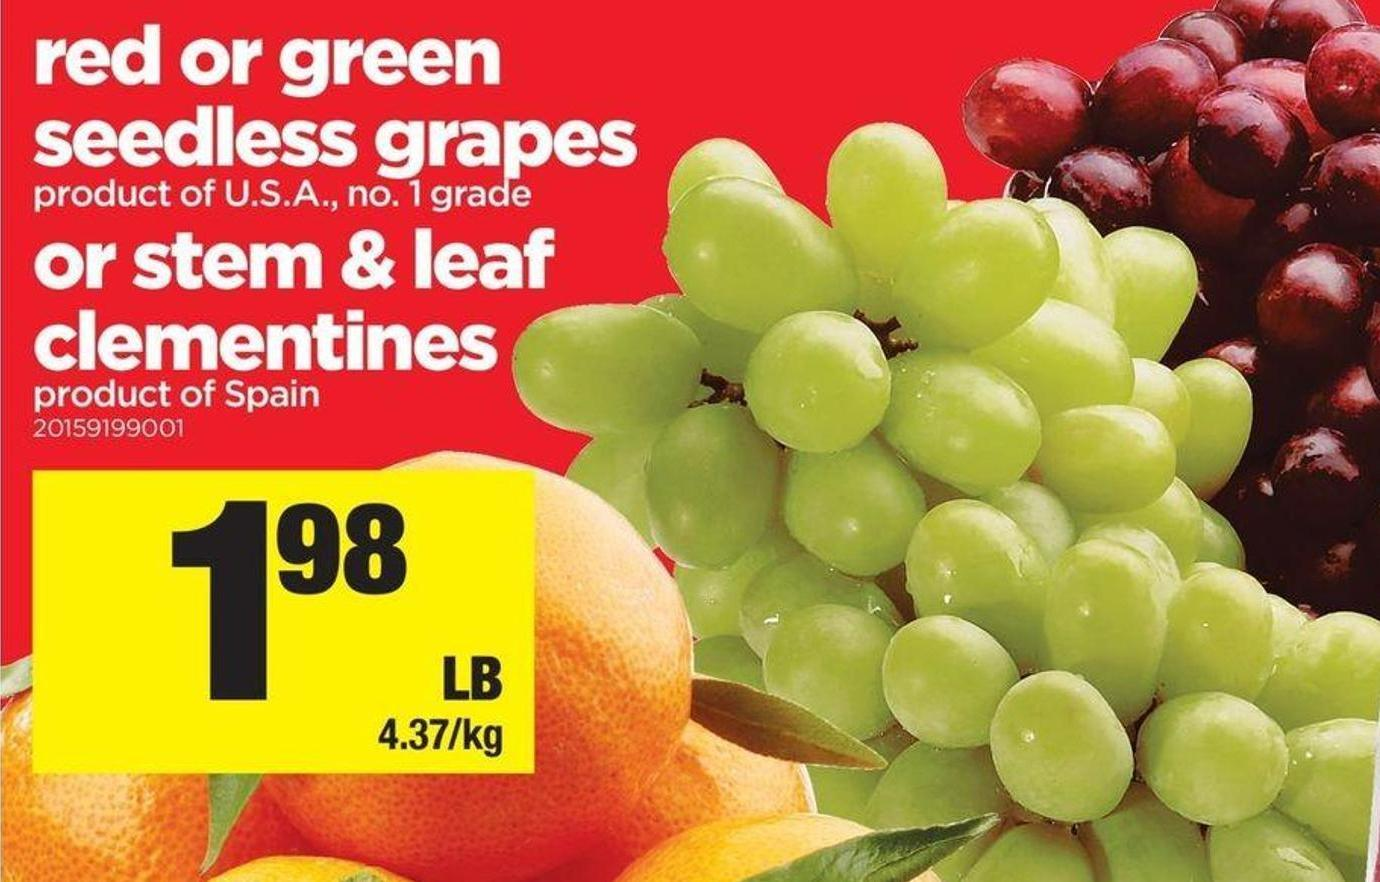 Red Or Green Seedless Grapes Or Stem & Leaf Clementines